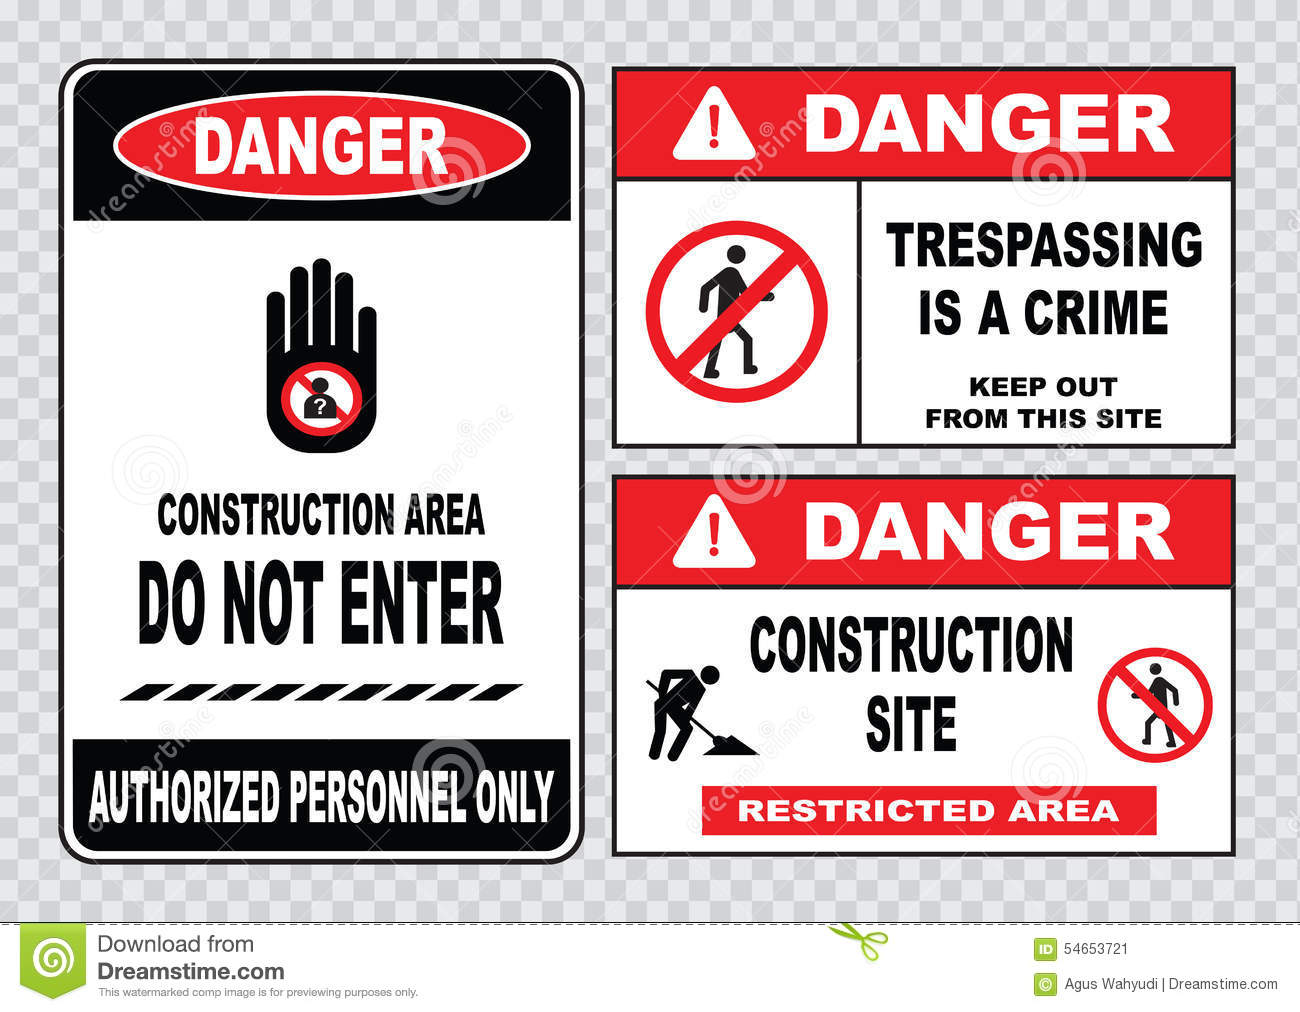 Site safety sign or construction safety